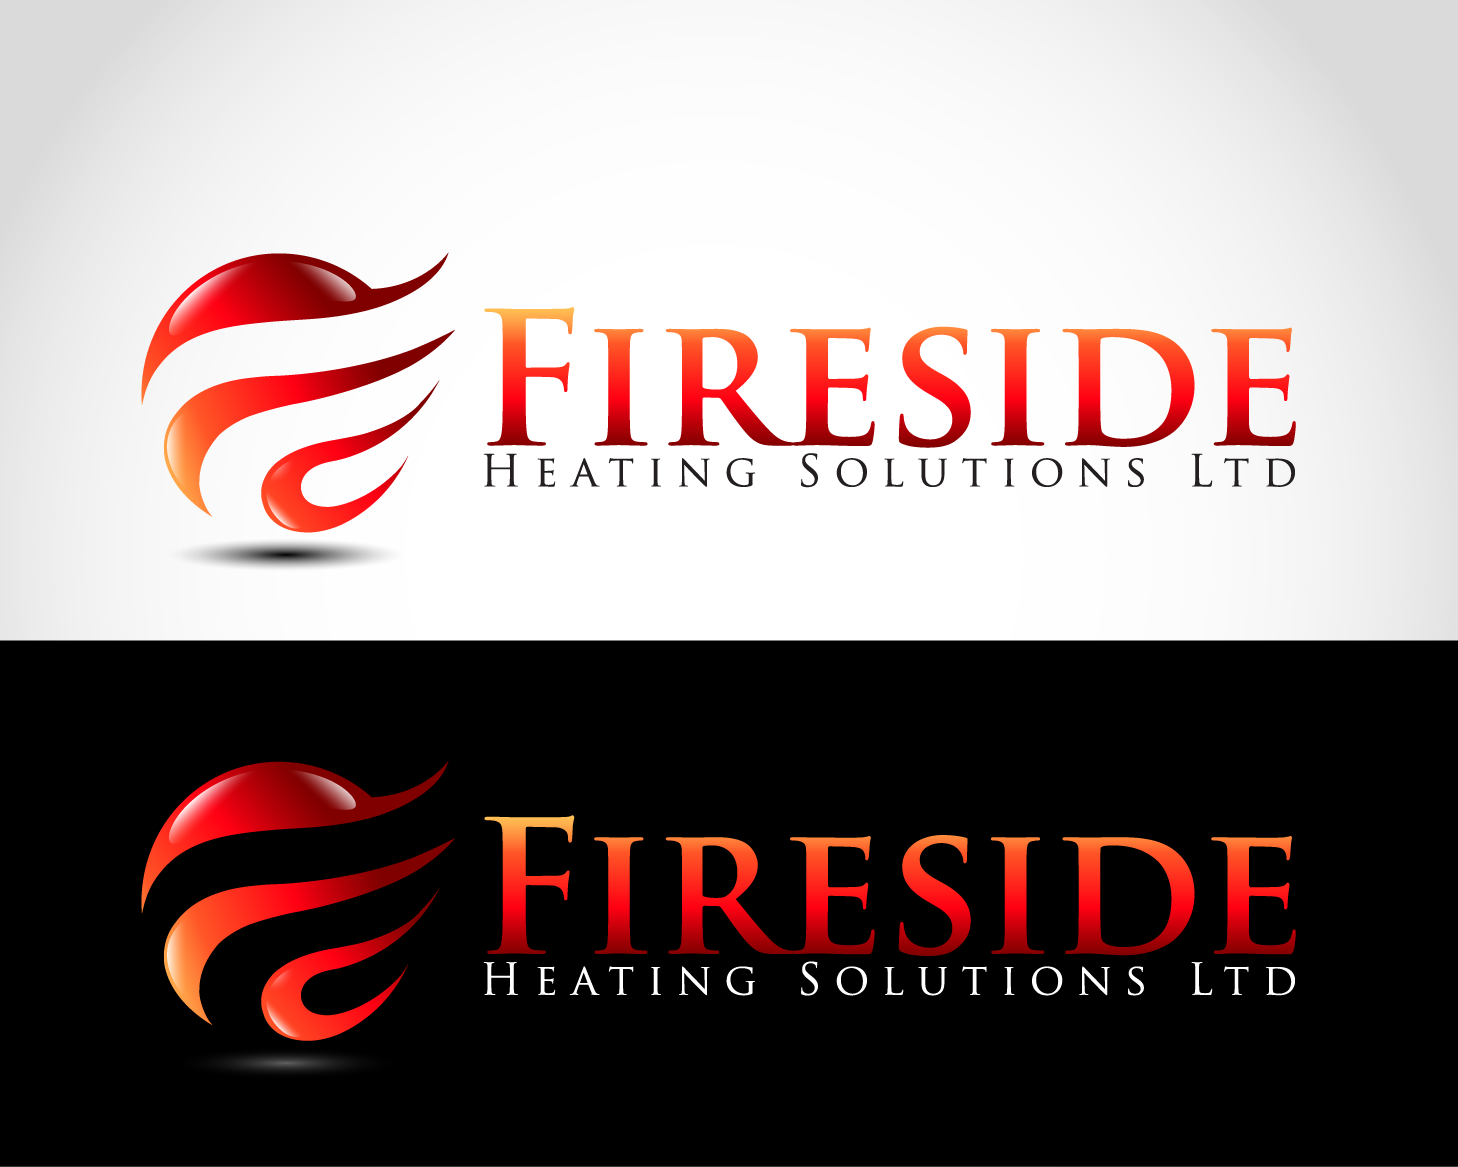 Logo Design by nirarajgraphics - Entry No. 127 in the Logo Design Contest Creative Logo Design for Fireside Heating Solutions Ltd..